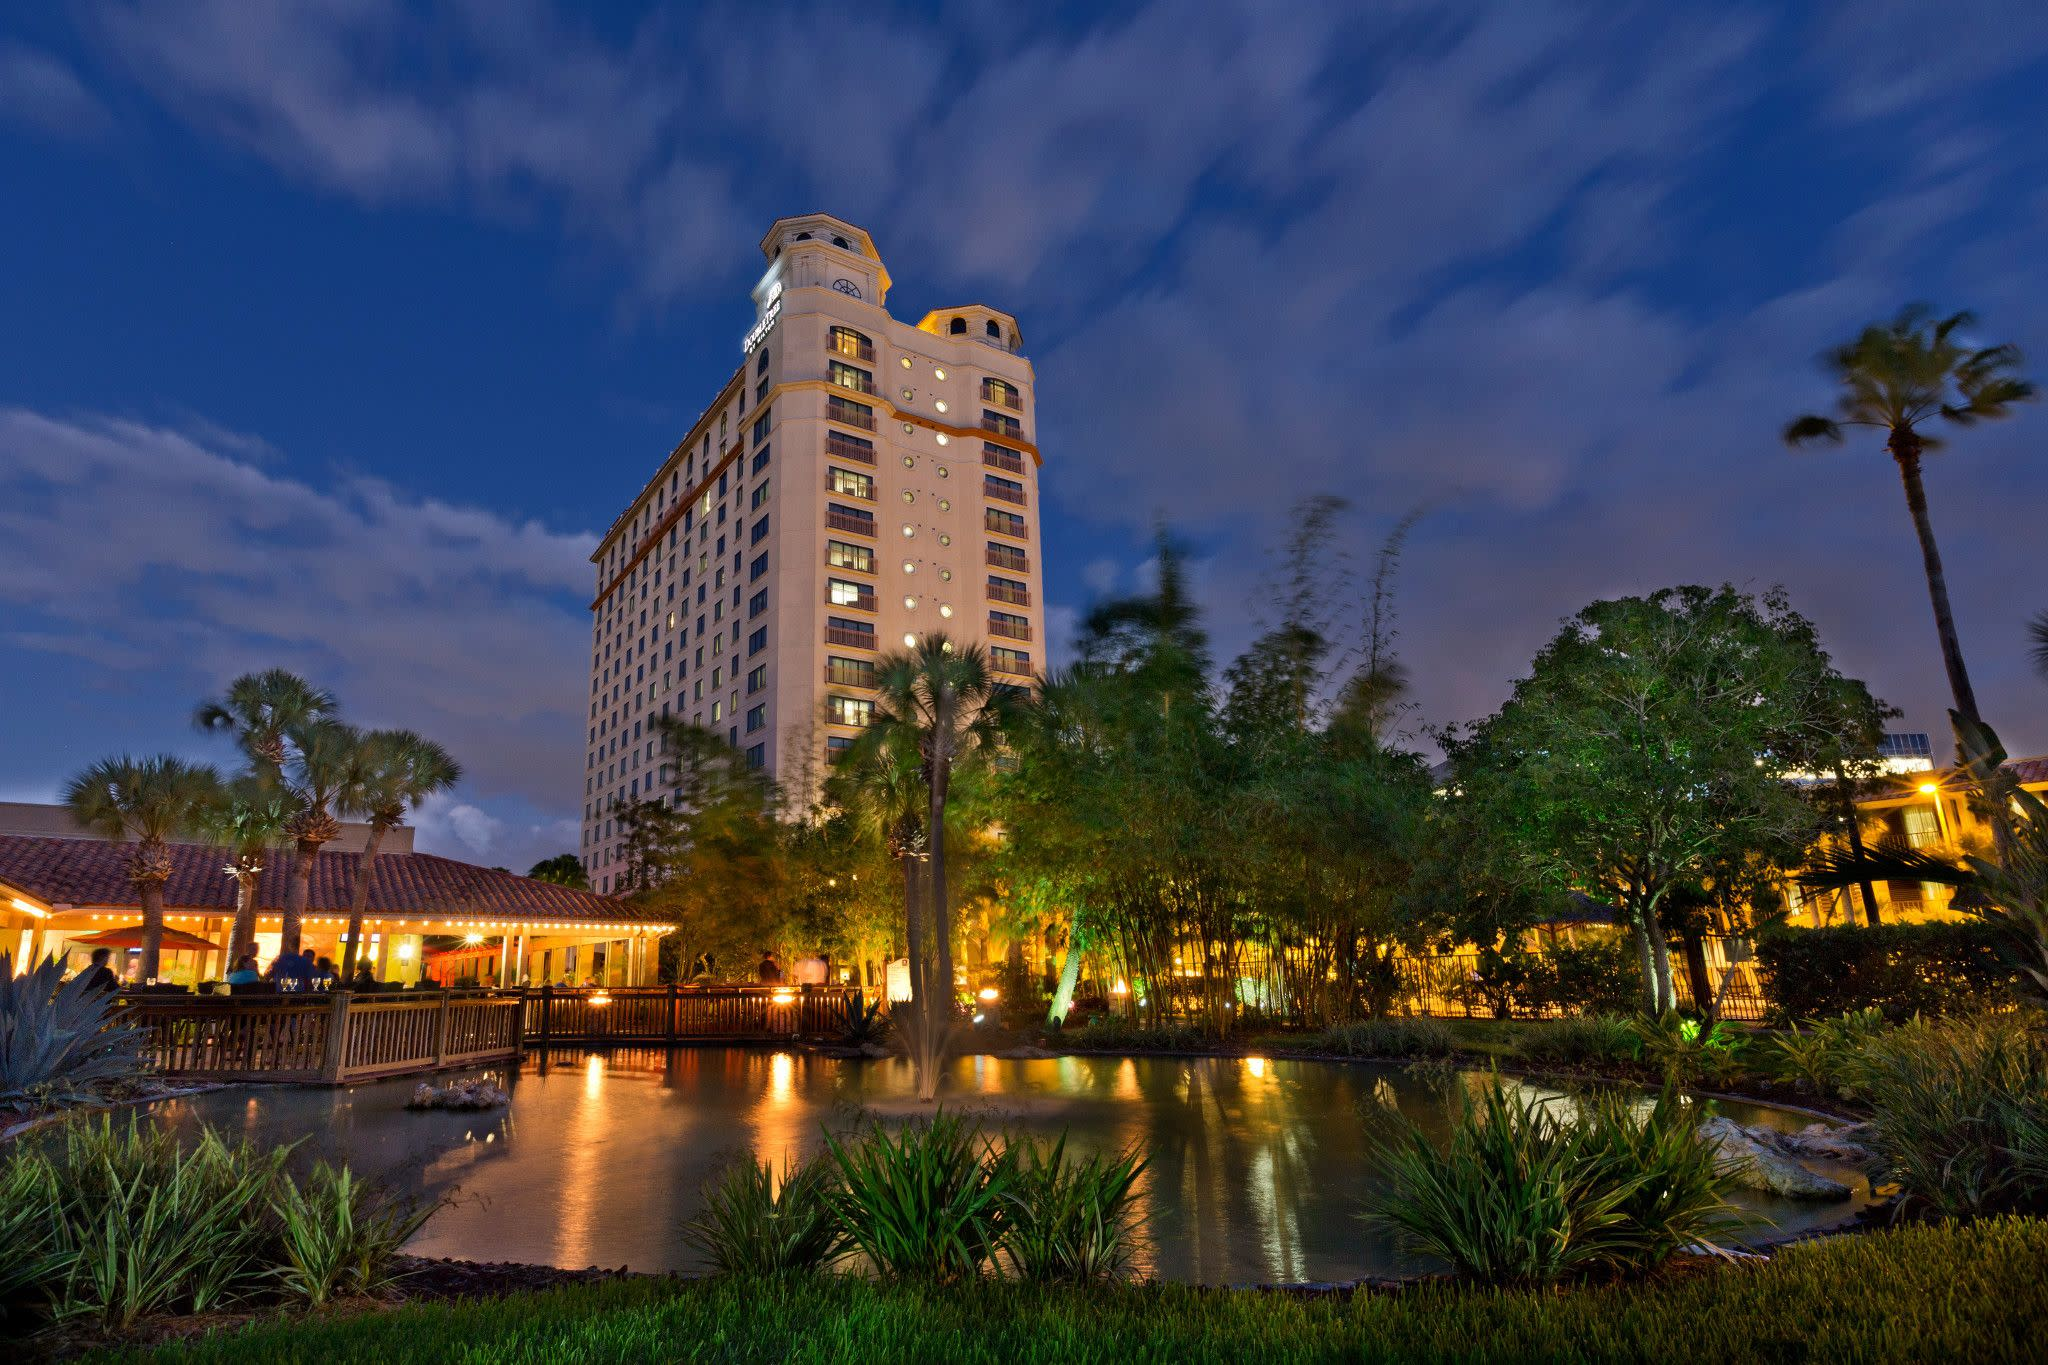 The Tower at DoubleTree by Hilton Orlando at SeaWorld